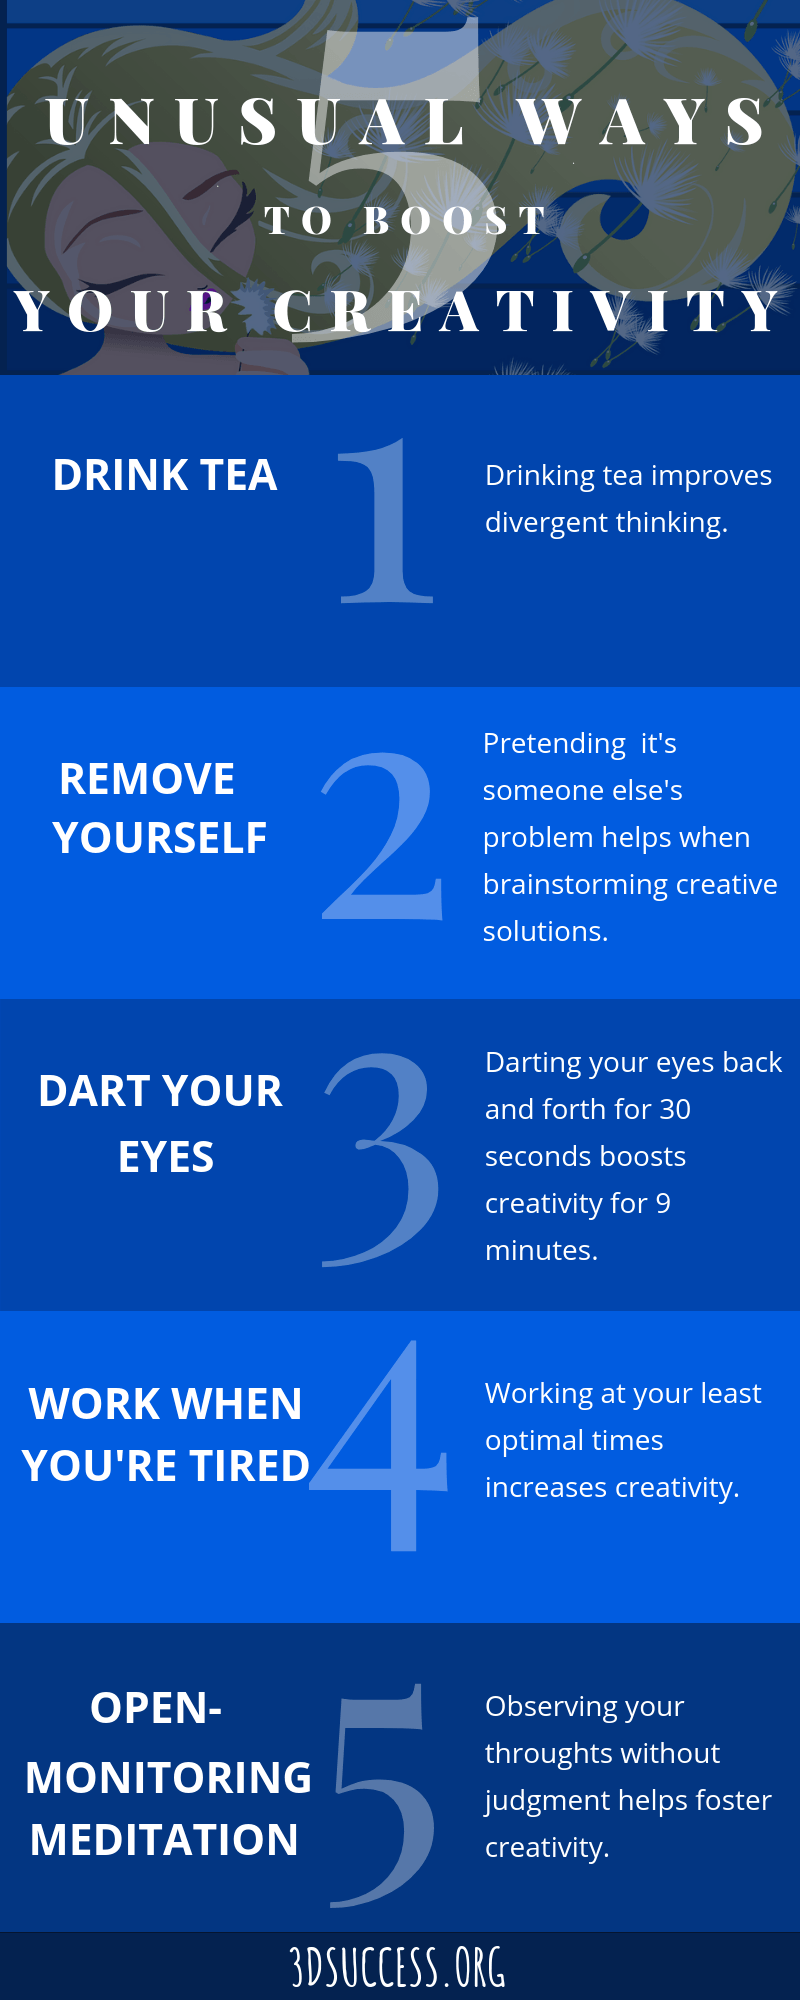 5 Unusual Ways to Boost Your Creativity Infographic Pin